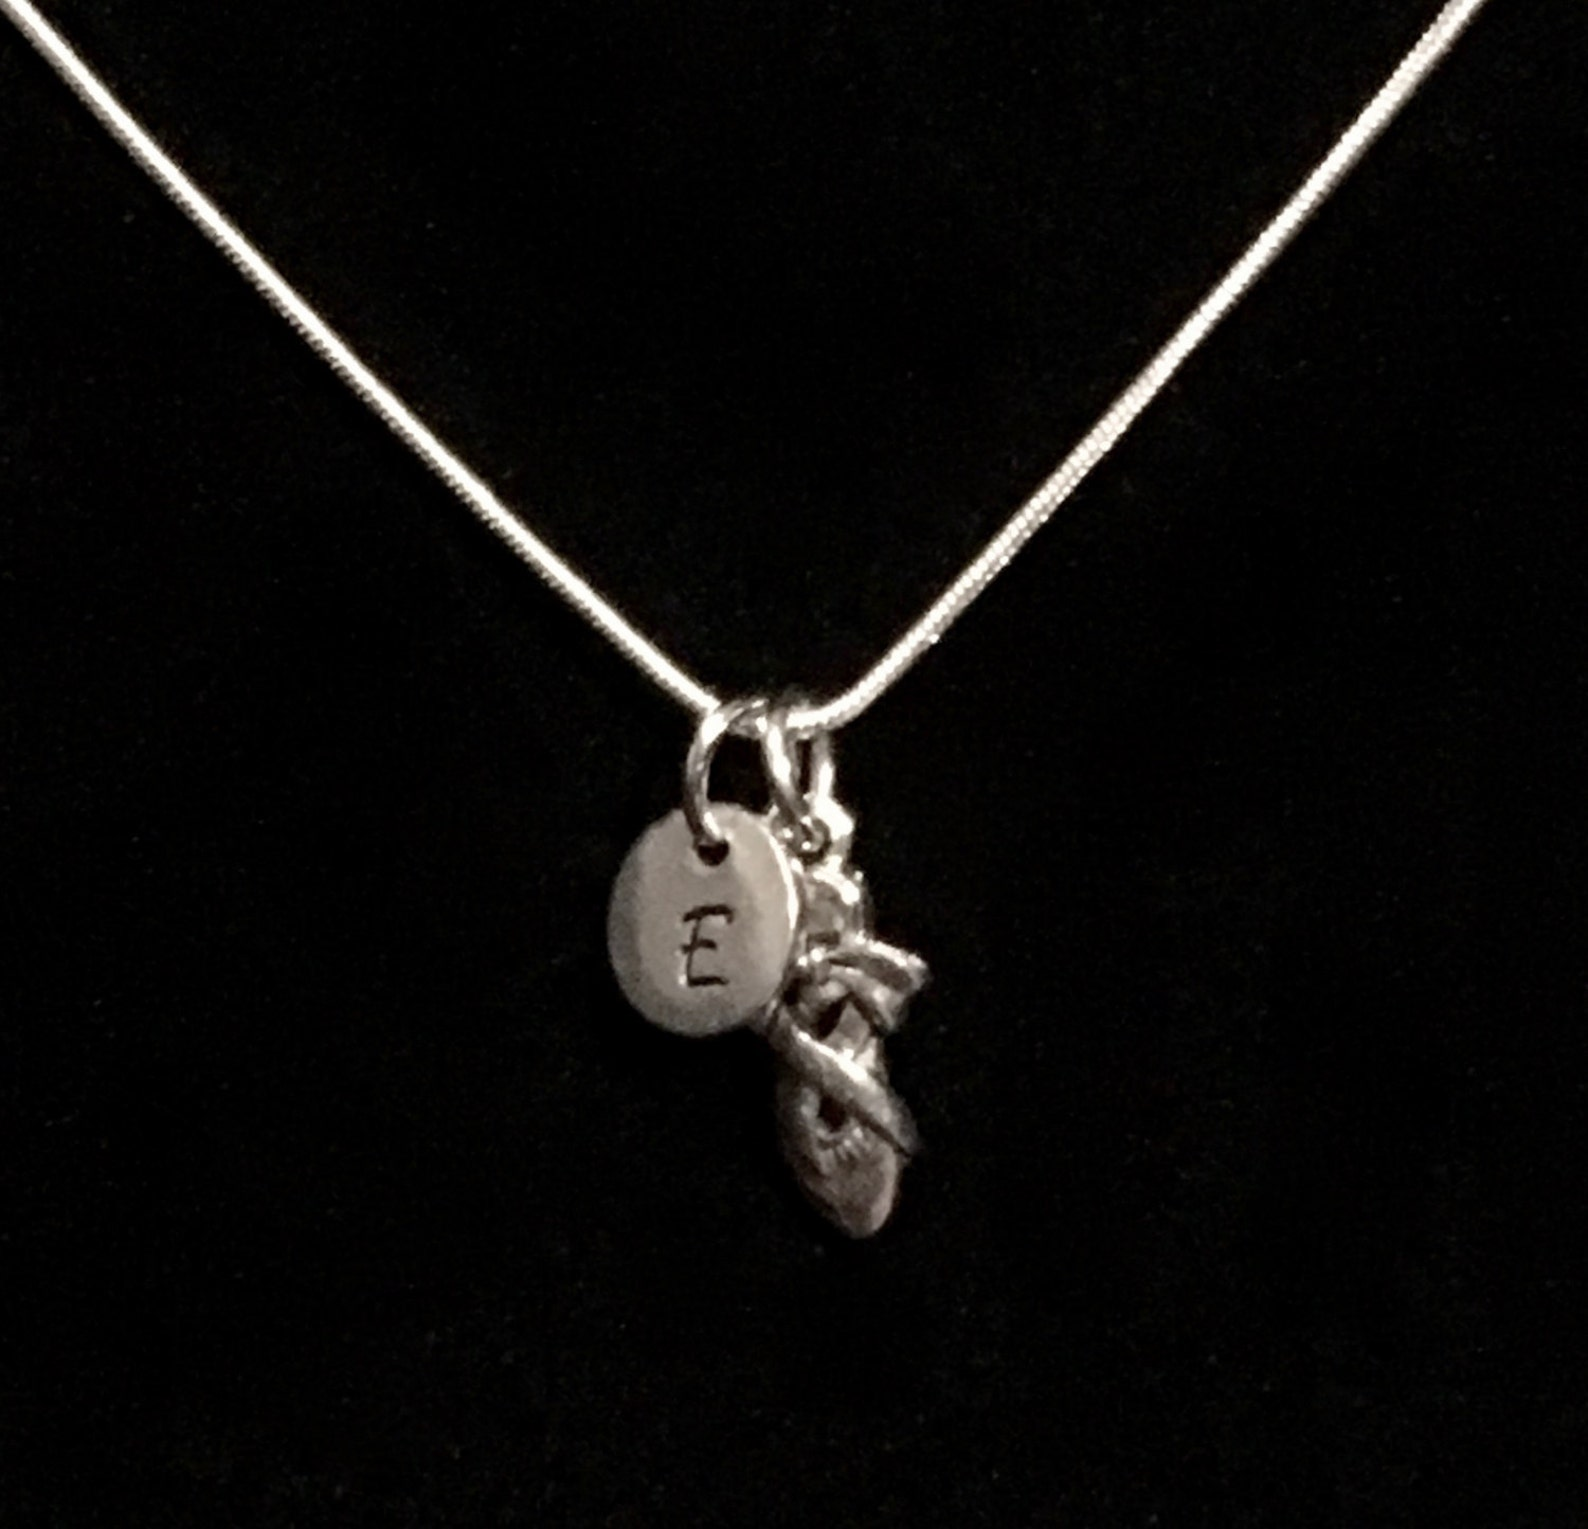 ballet shoe sterling silver necklace, ballet silver necklace, dancer sterling necklace, ballerina sterling necklace qb41